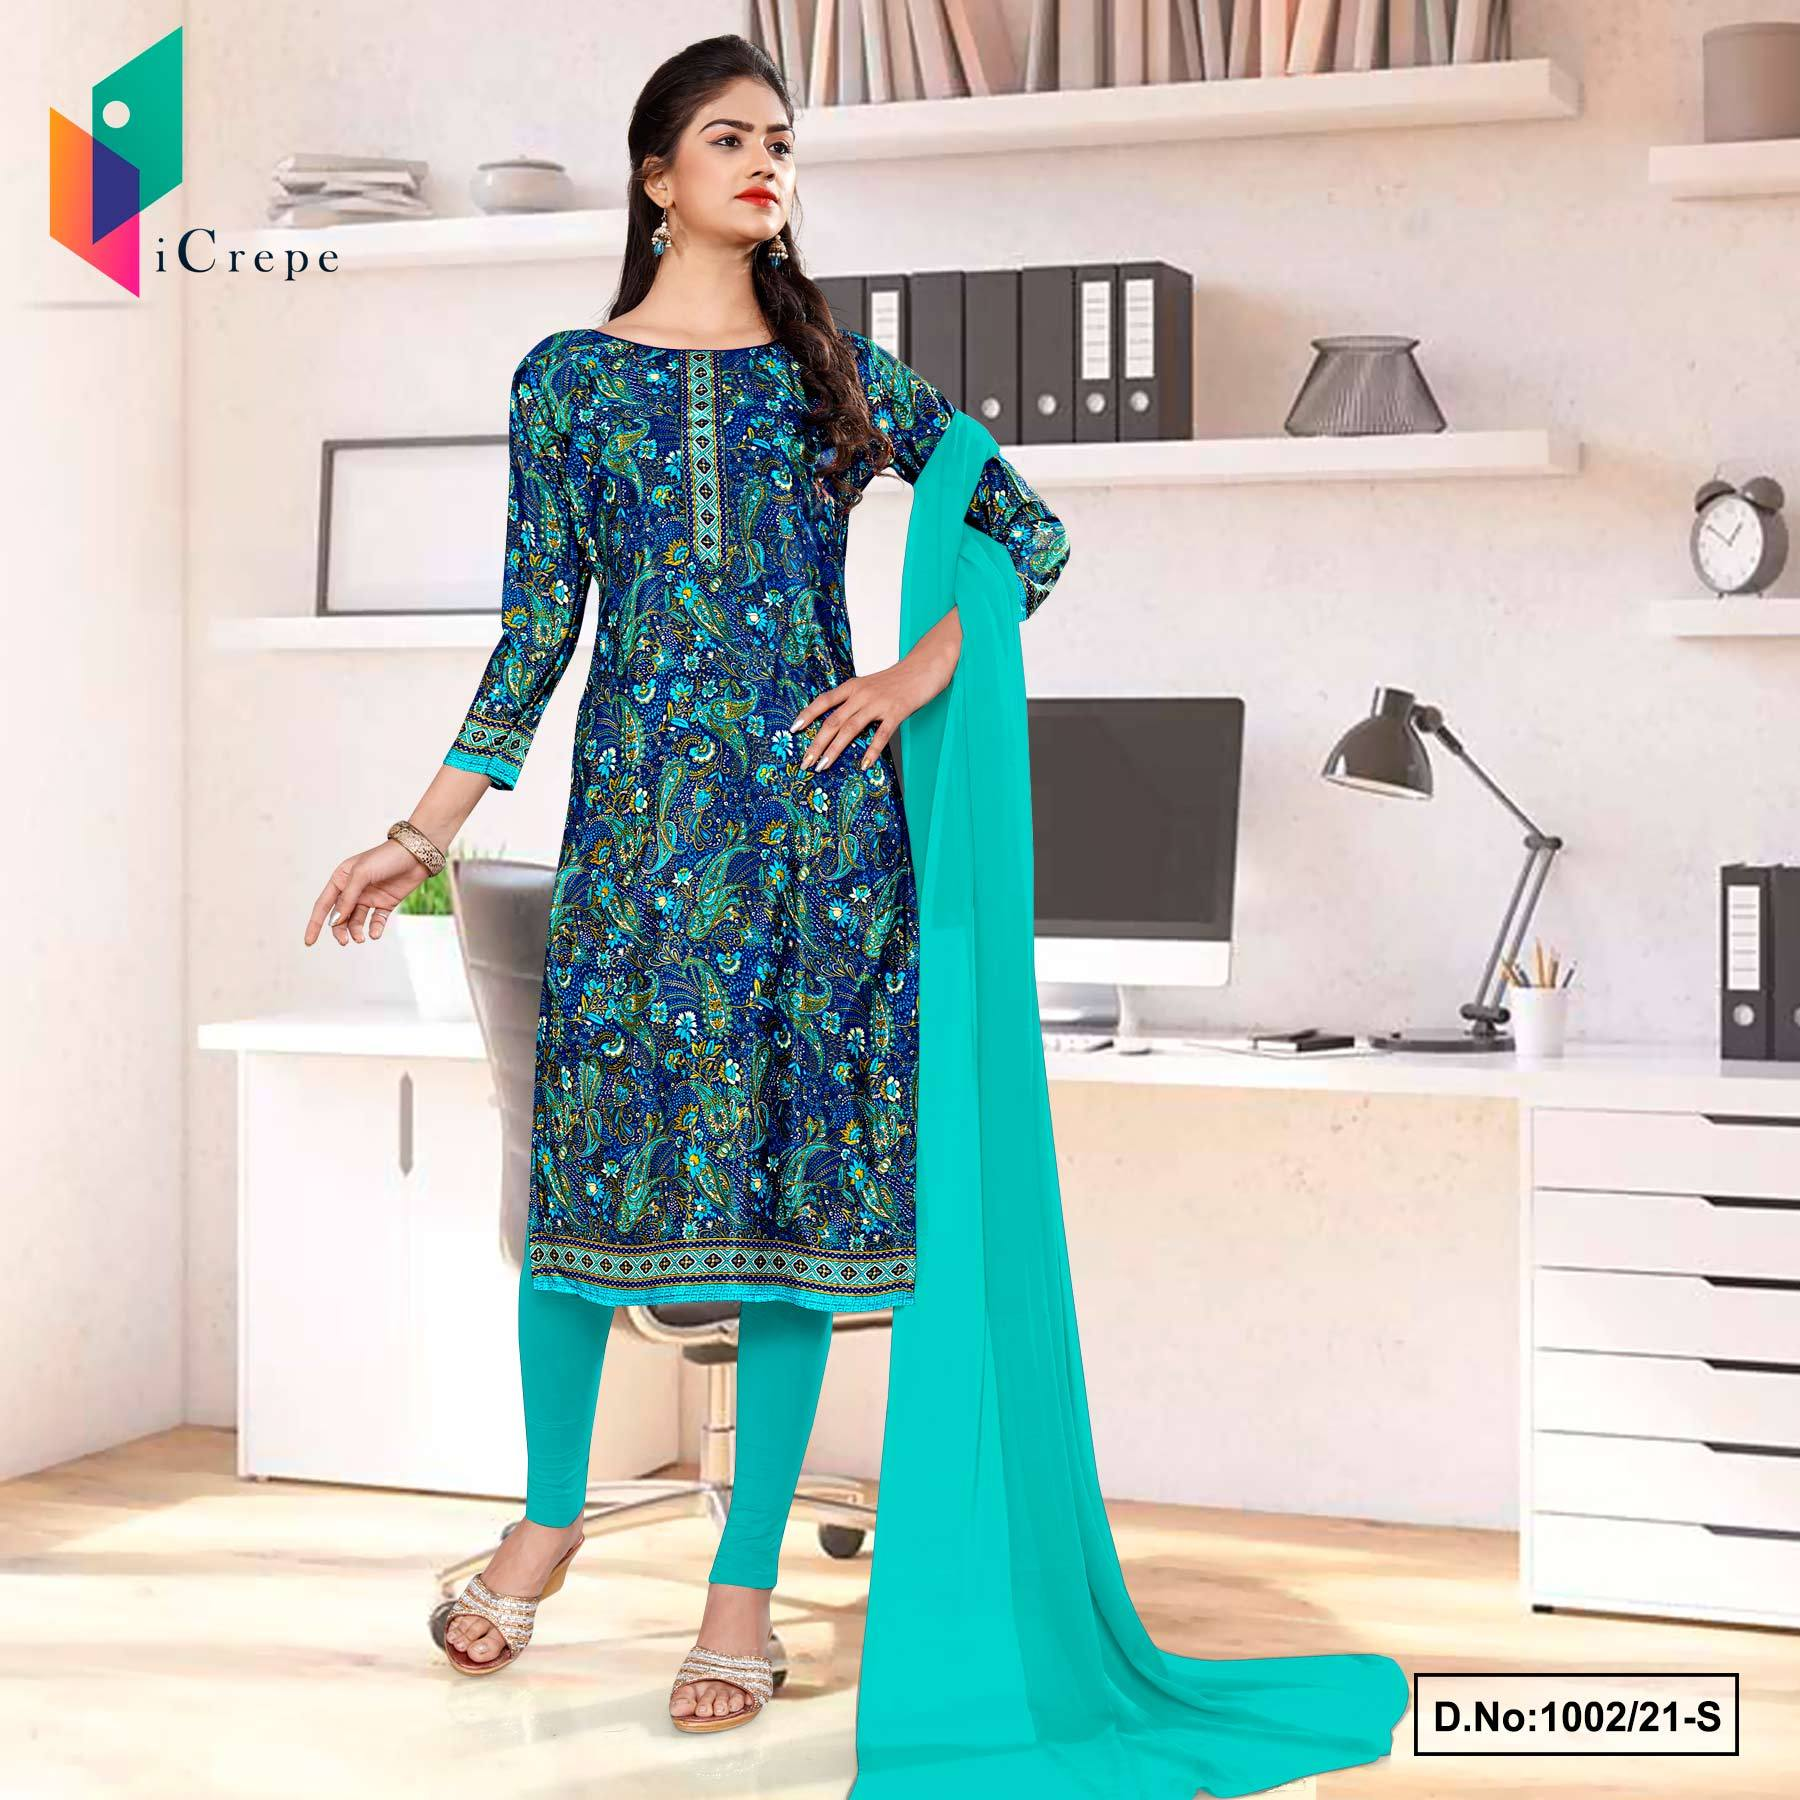 Blue Green Premium Paisley Print Italian Crepe Salwar Kameez for Teachers Uniform Sarees